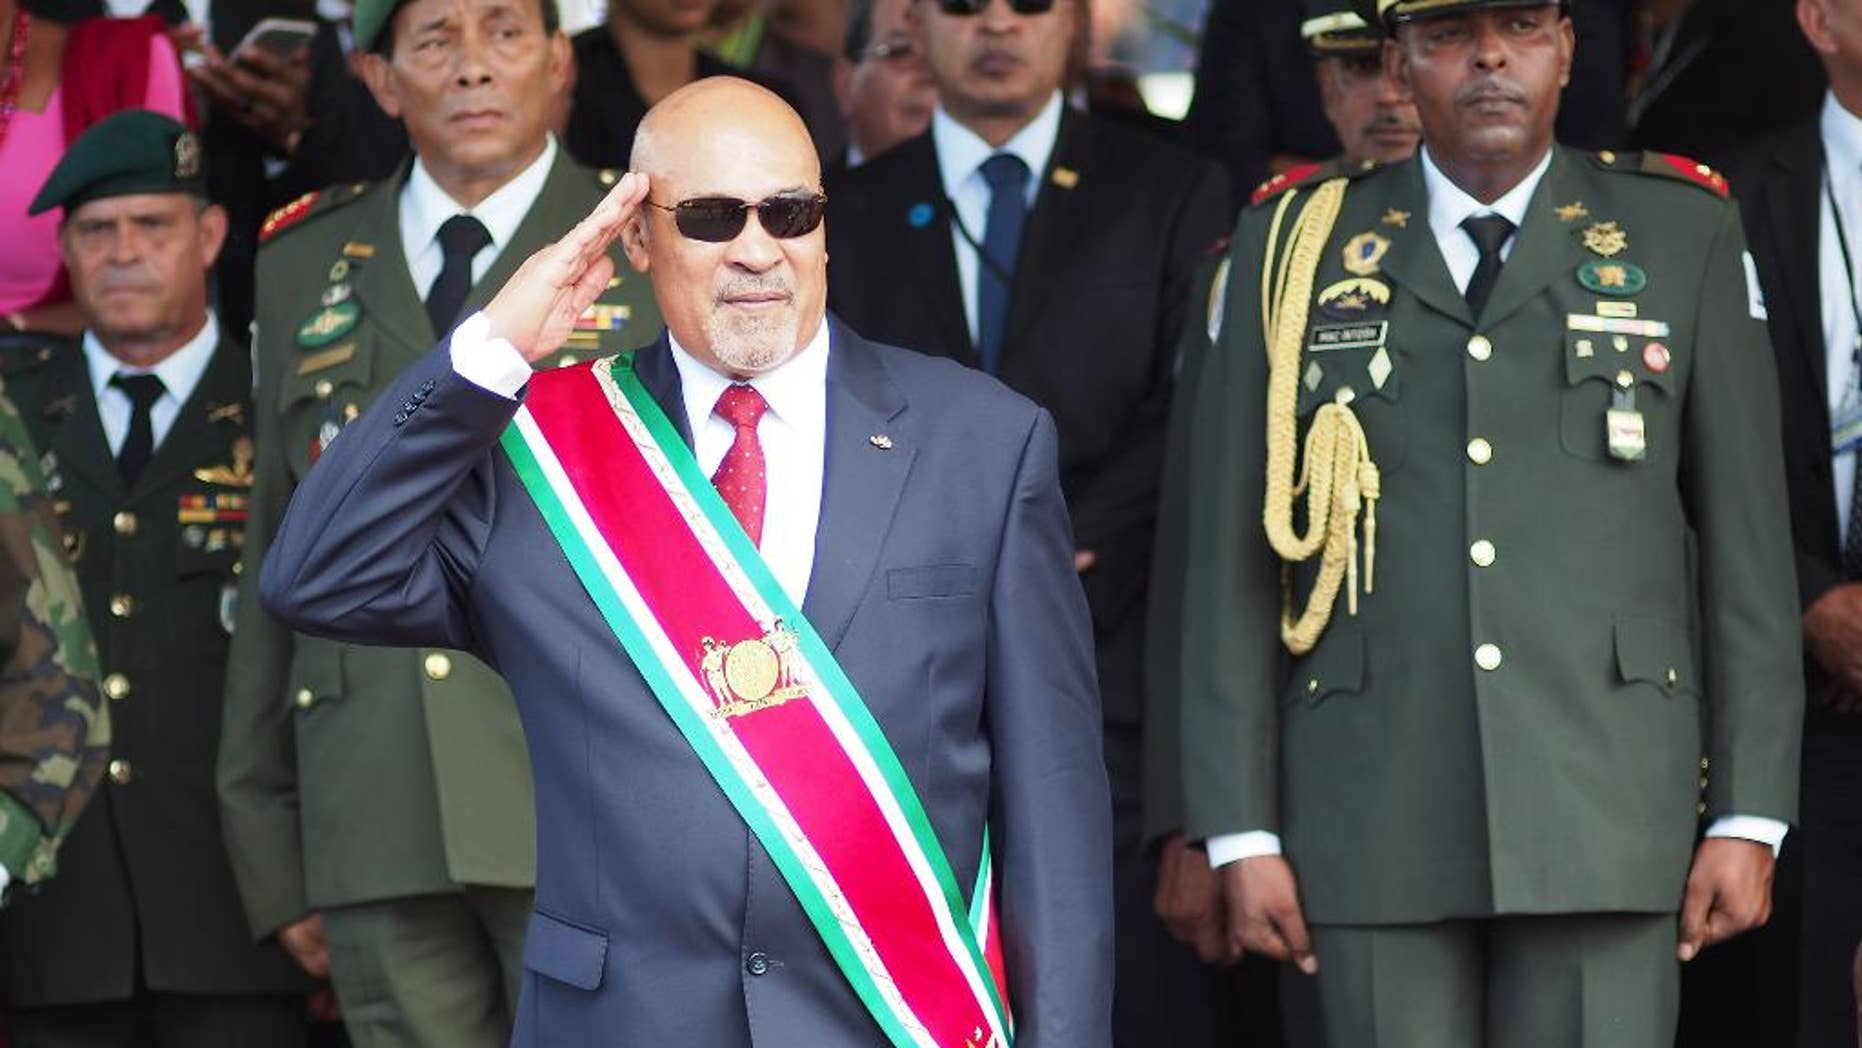 FILE - In this Aug. 12, 2015, file photo, Suriname President Desire Delano Bouterse salutes during a military parade, after being sworn in for his second term, in Paramaribo, Suriname. A two-time coup leader and former dictator accused of executing 15 political opponents in 1982, Bouterse has again moved on Wednesday, June 29, 2016, to prevent authorities in the South American nation from putting him on trial for those 15 deaths. (AP Photo/Ertugrul Kilic, File)